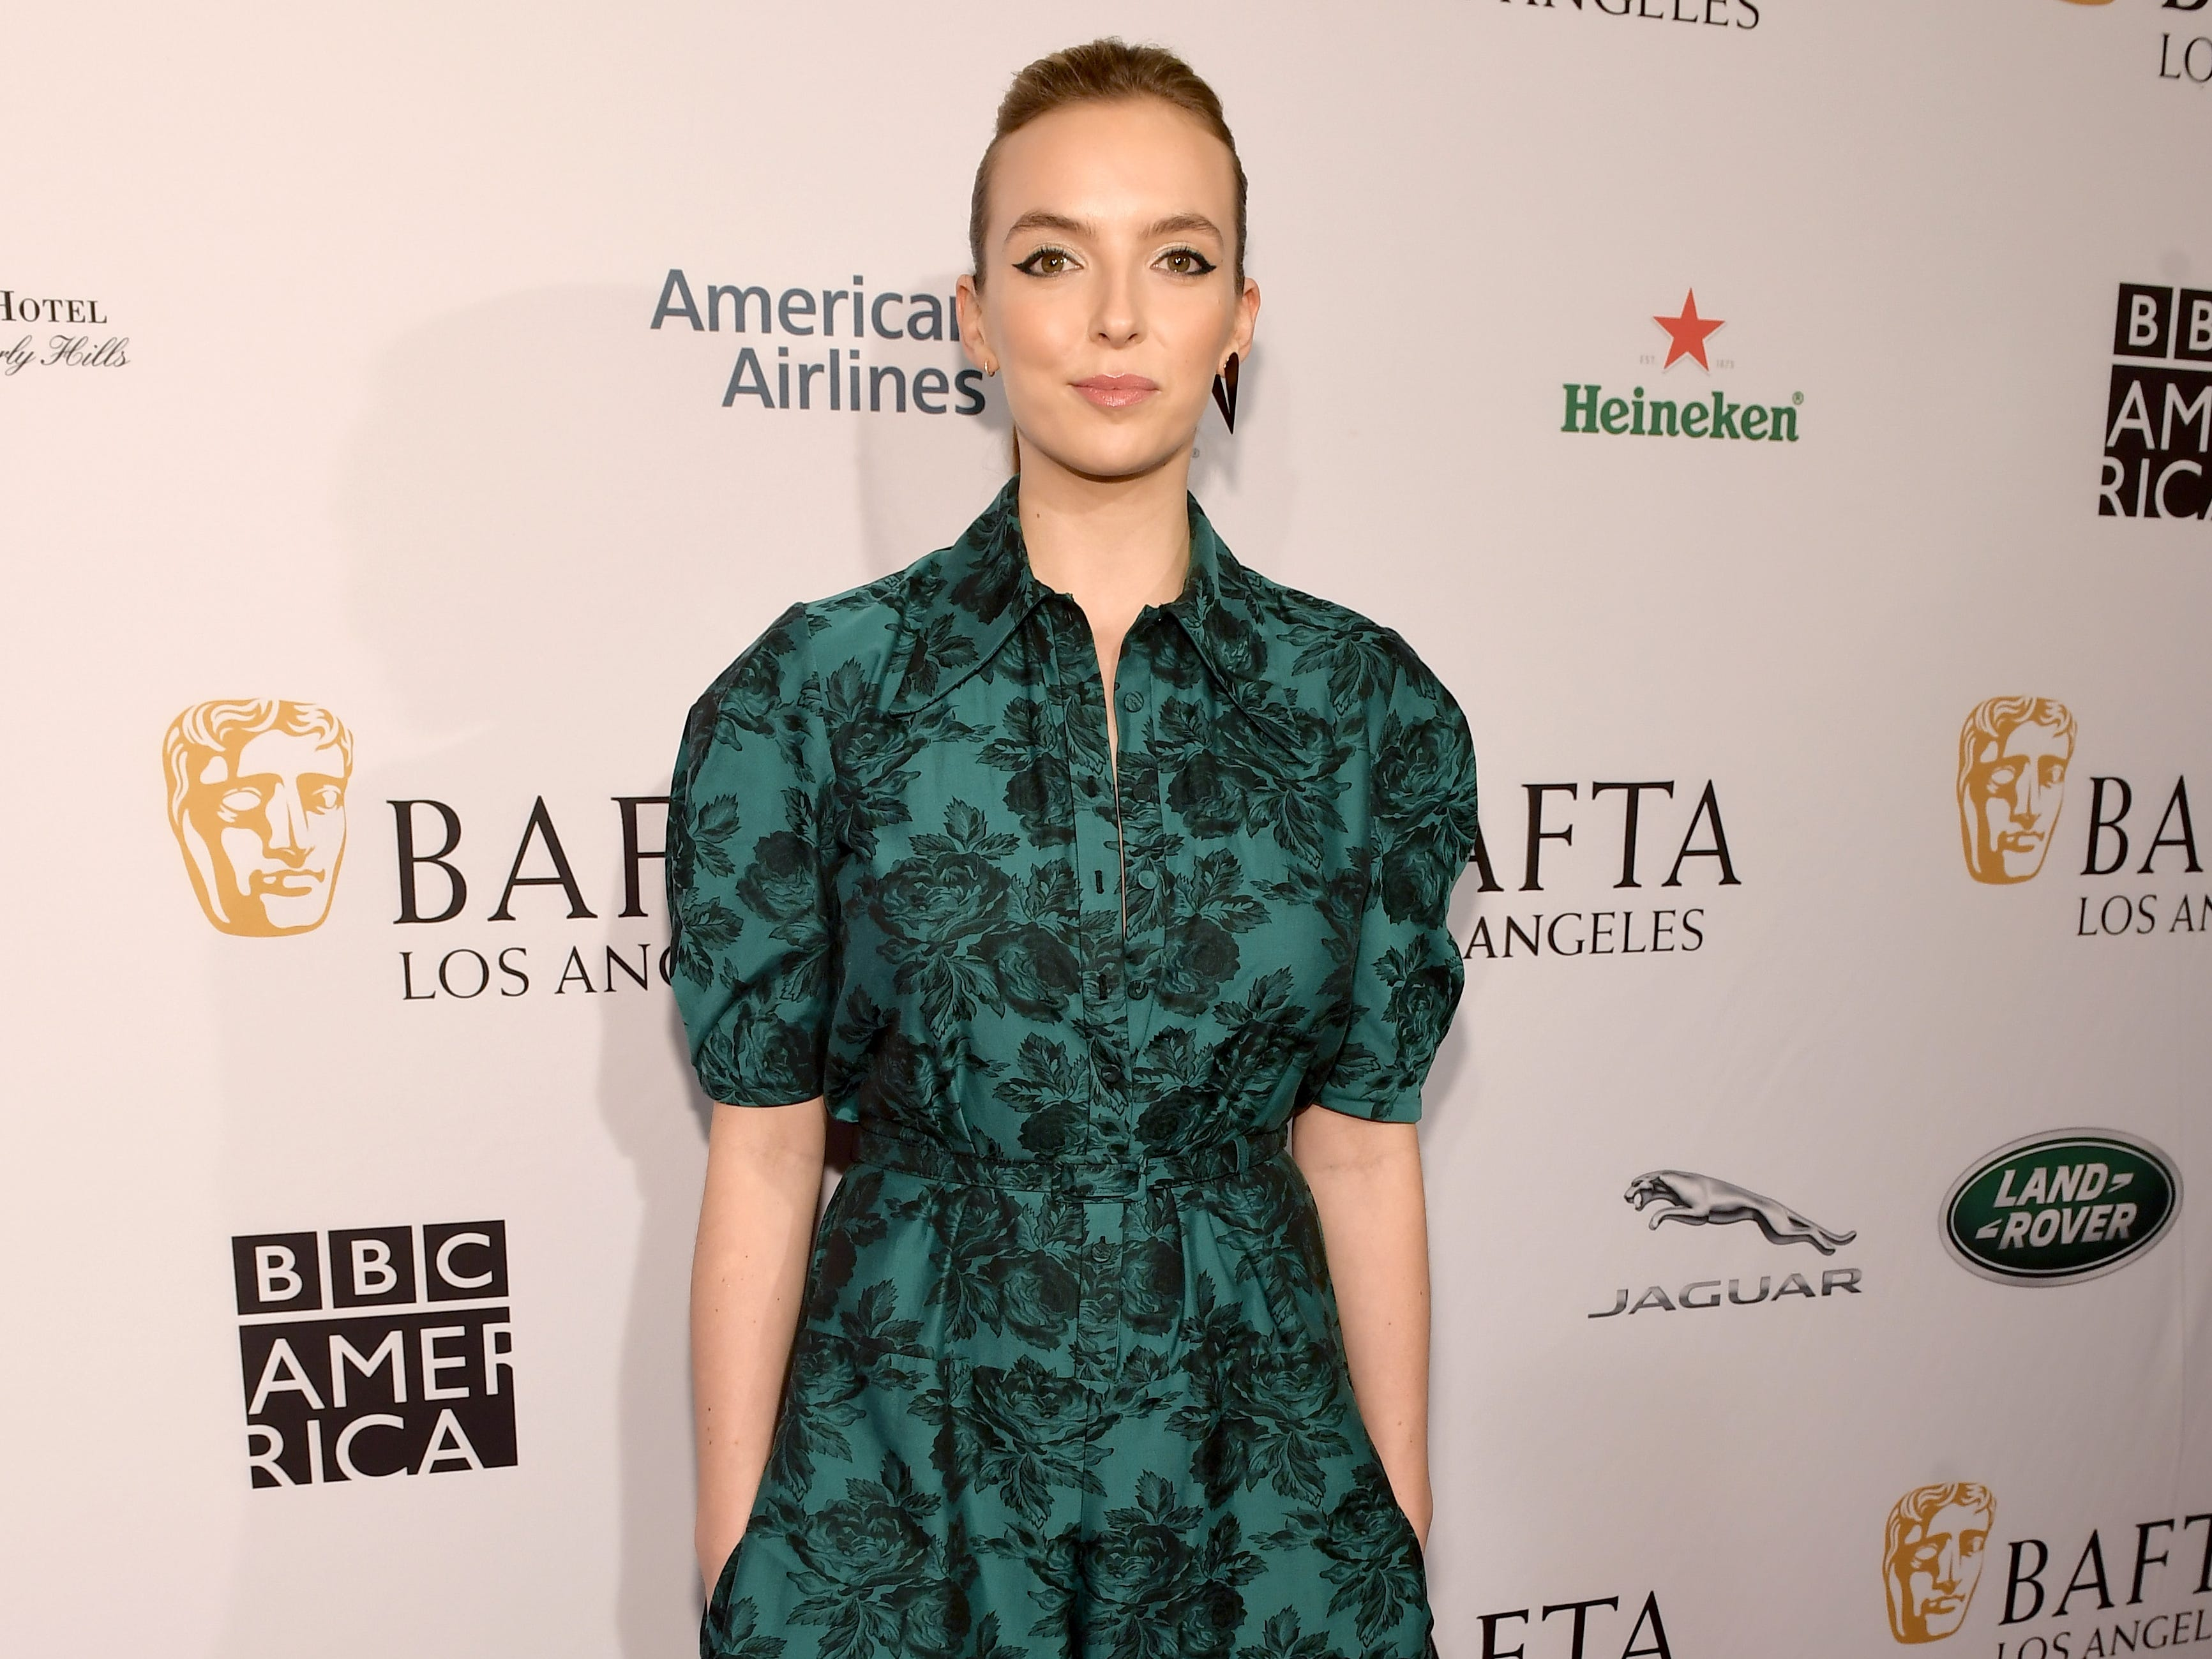 LOS ANGELES, CA - JANUARY 05:  Jodie Comer attends The BAFTA Los Angeles Tea Party at Four Seasons Hotel Los Angeles at Beverly Hills on January 5, 2019 in Los Angeles, California.  (Photo by Matt Winkelmeyer/Getty Images) ORG XMIT: 775256316 ORIG FILE ID: 1077926608